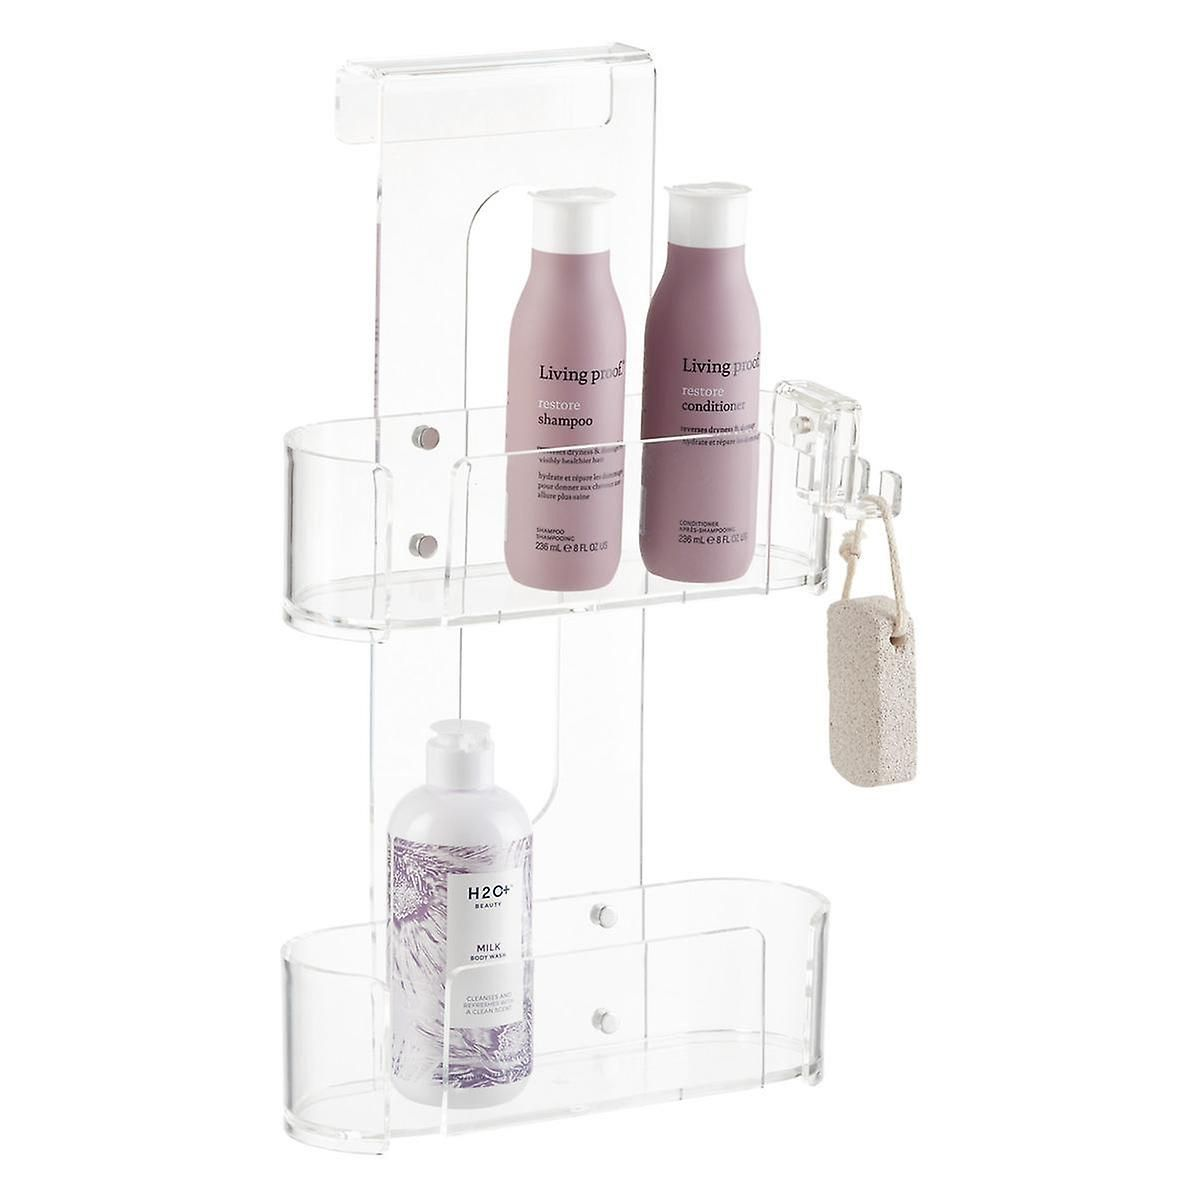 2-Tier Acrylic Shower Caddy | New Place | Pinterest | Shower caddies ...